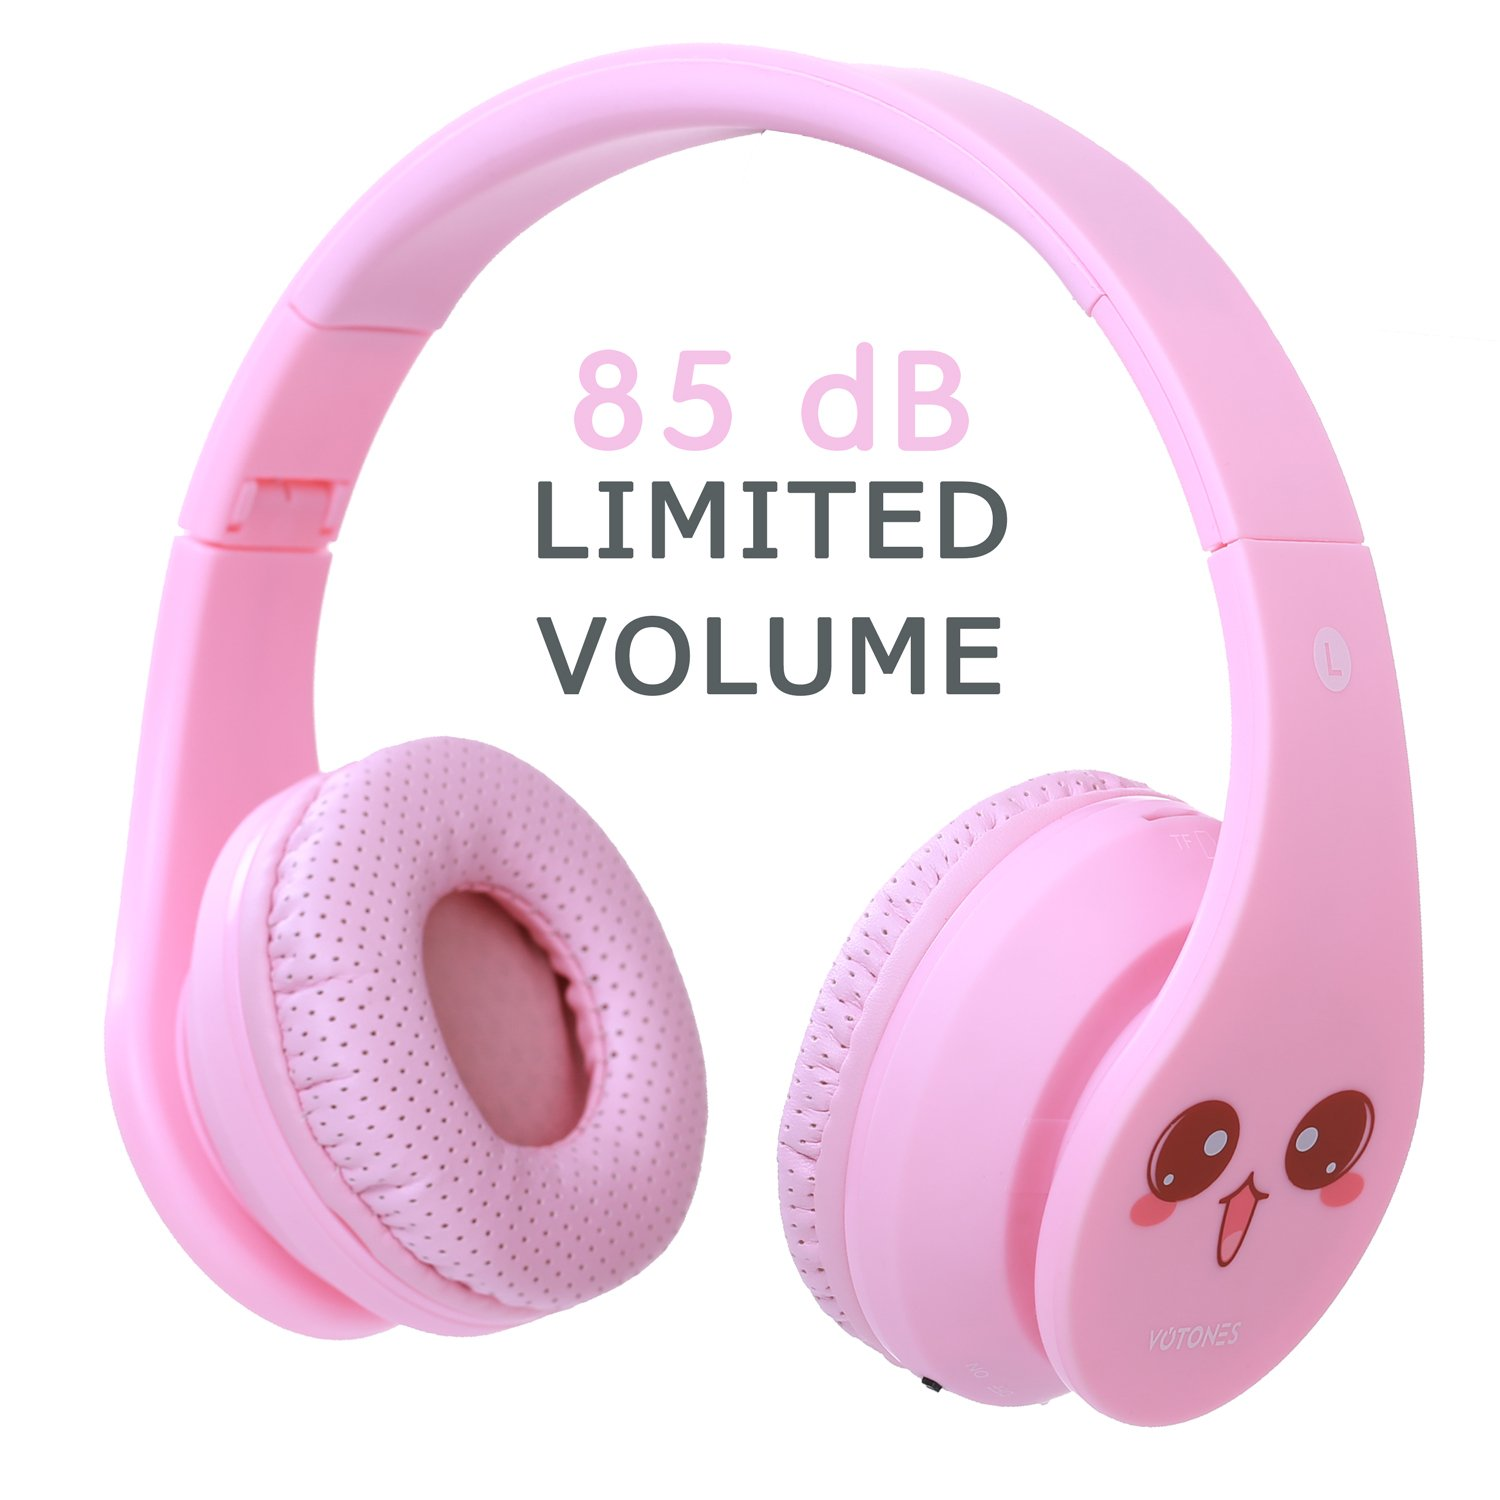 Kids Bluetooth Headphones, Wireless/Wired Foldable Adjustable Lightweight Headset with Mic, Noise Reduction Cancelling, for Phones Computer for Children/Boy/Girl/Teen/Family (Pink1)